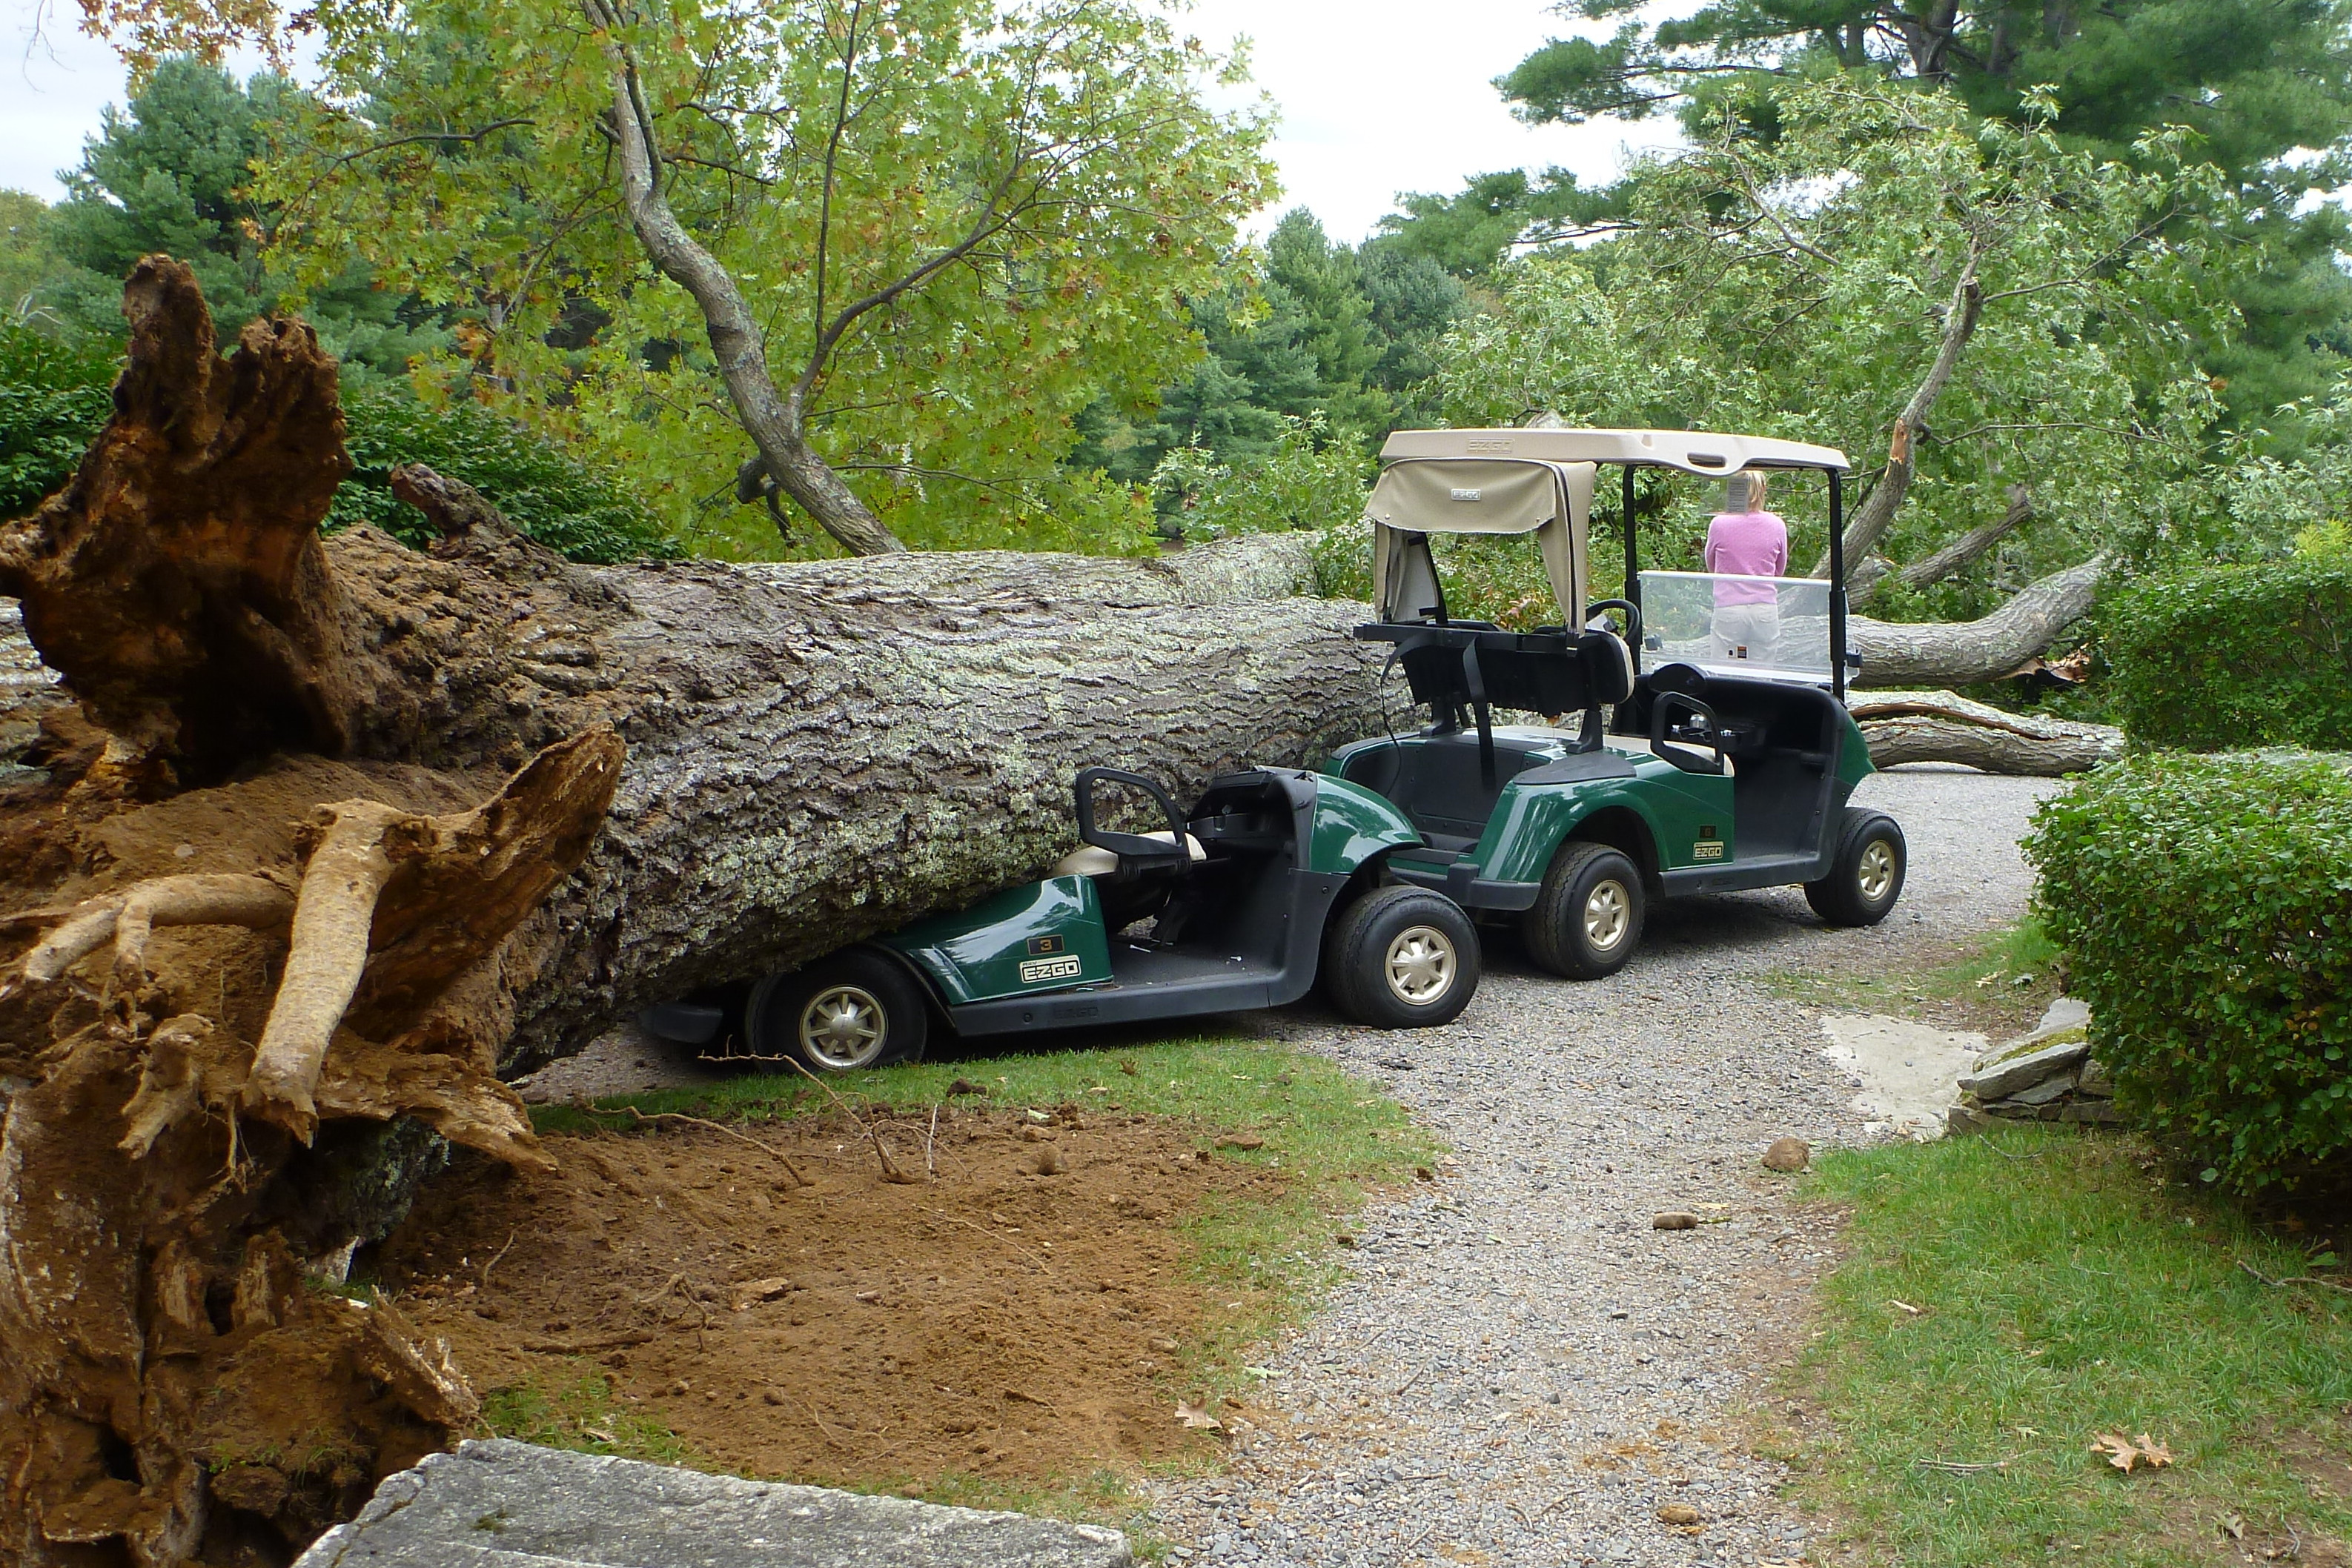 Huge Falling Tree Crushes Golf Carts My Usual Game